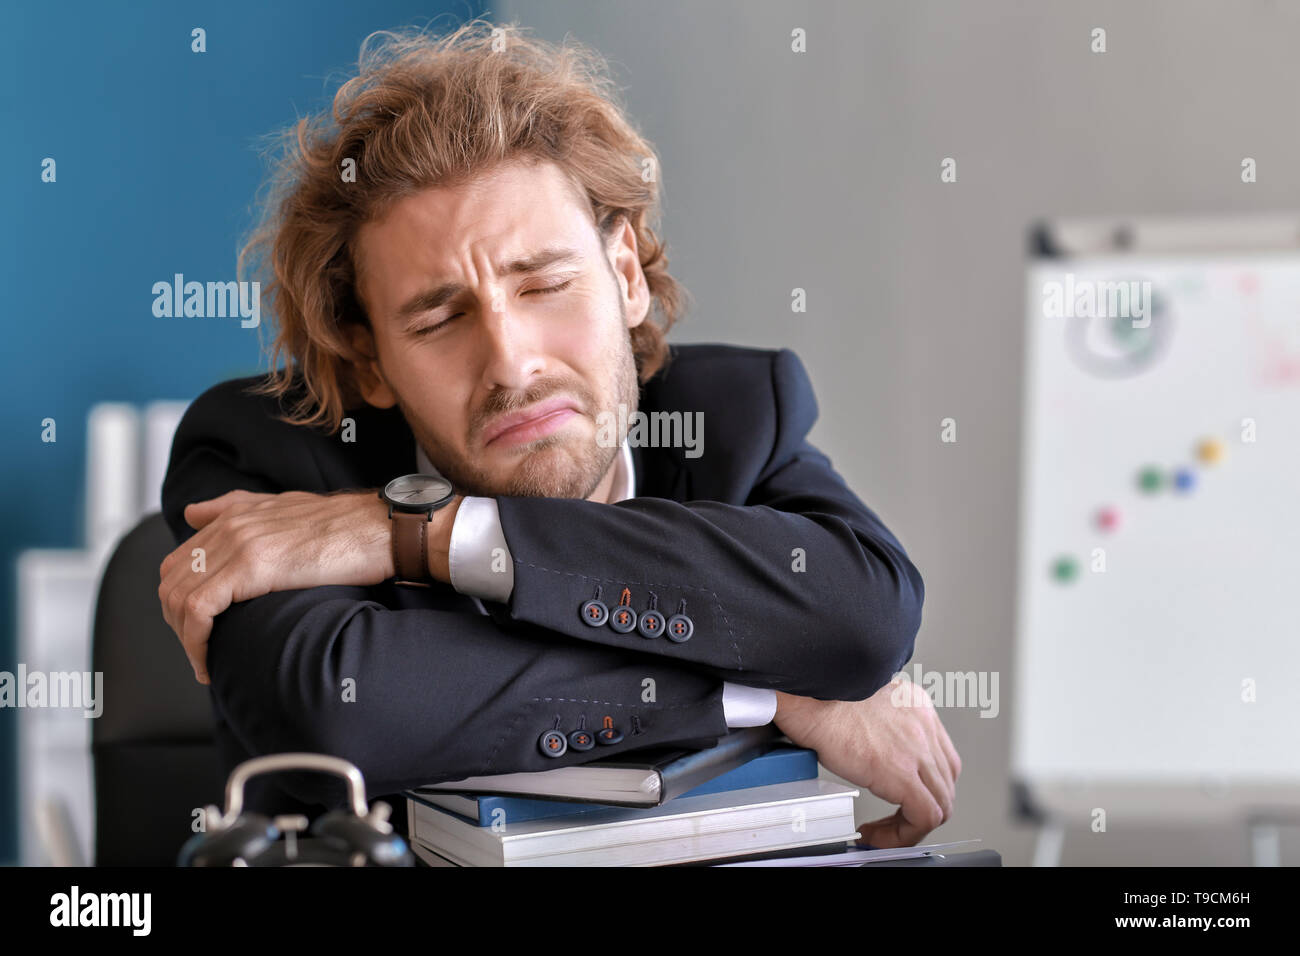 Stressed businessman missing deadlines in office - Stock Image